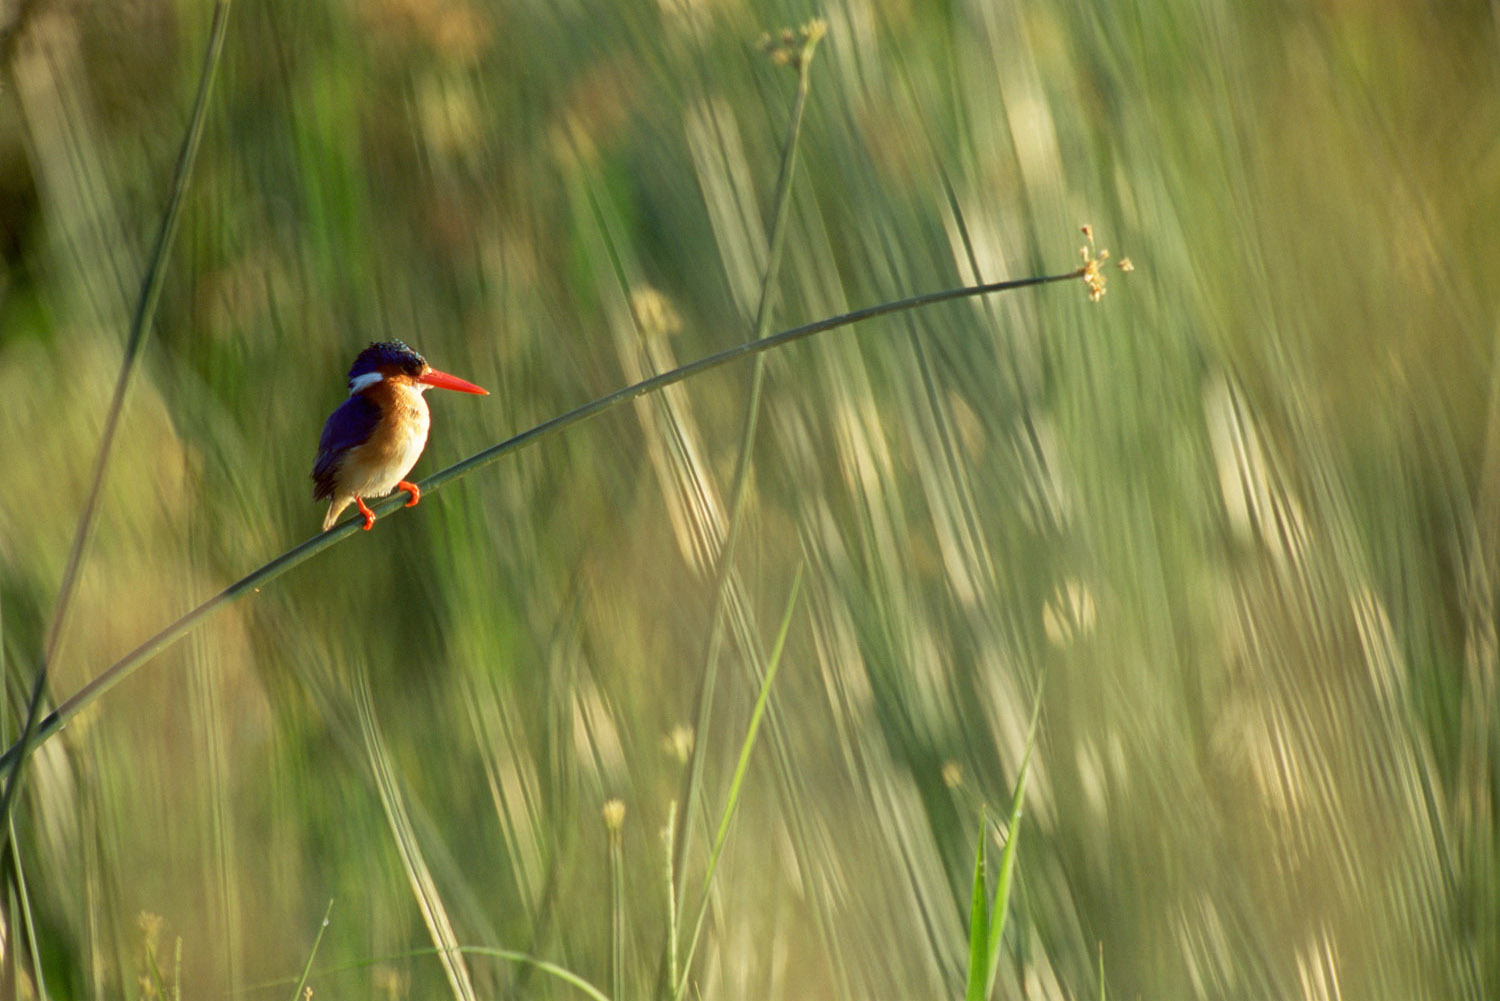 Malachite kingfisher on reed, Tsavo West National Park, Kenya